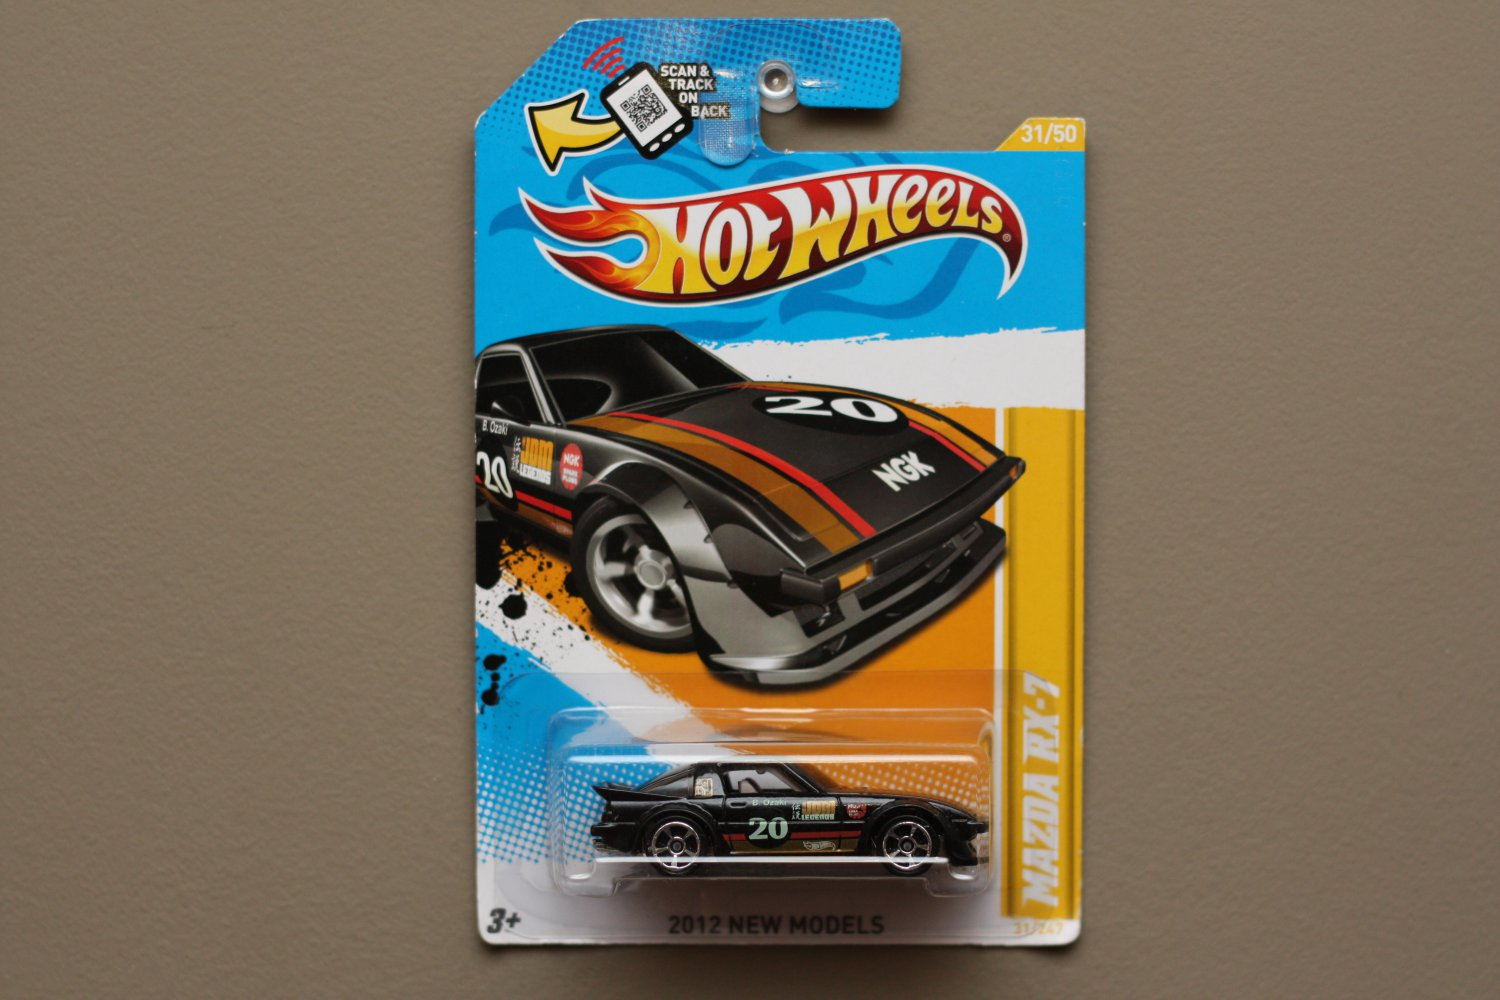 Hot Wheels 2012 New Models Mazda RX-7 (black) (SEE CONDITION)